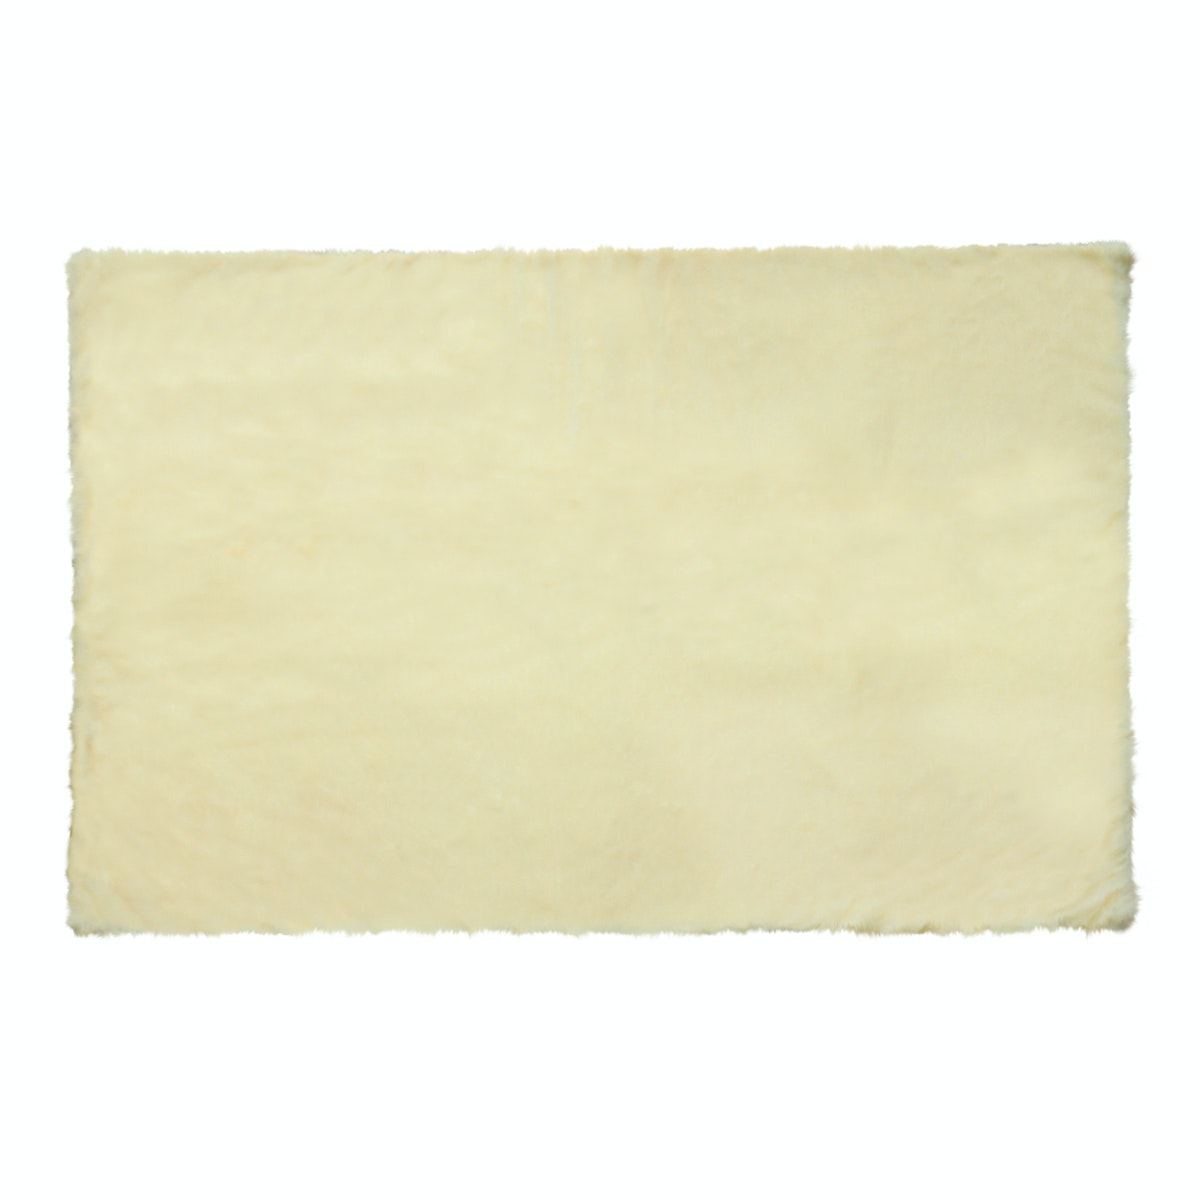 Glerry Home Decor Square Cream Fur Rug 200x150cm